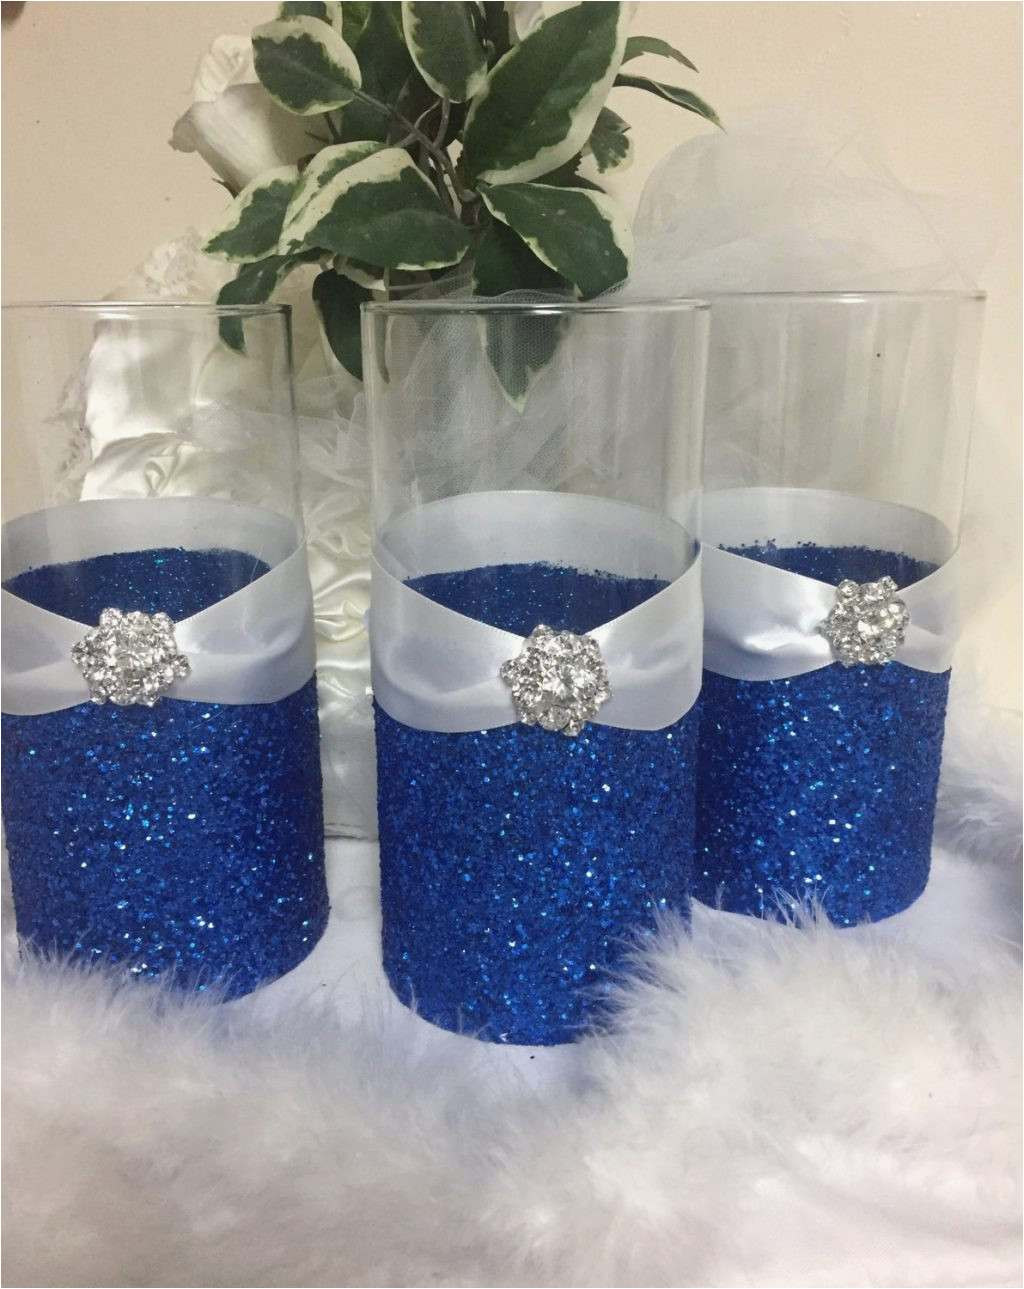 tall glass vases for sale of diy wedding ideas tallh vases glitter vase centerpiece diy vasei 0d pertaining to diy wedding plan tallh vases glitter vase centerpiece diy vasei 0d ball for design opinion